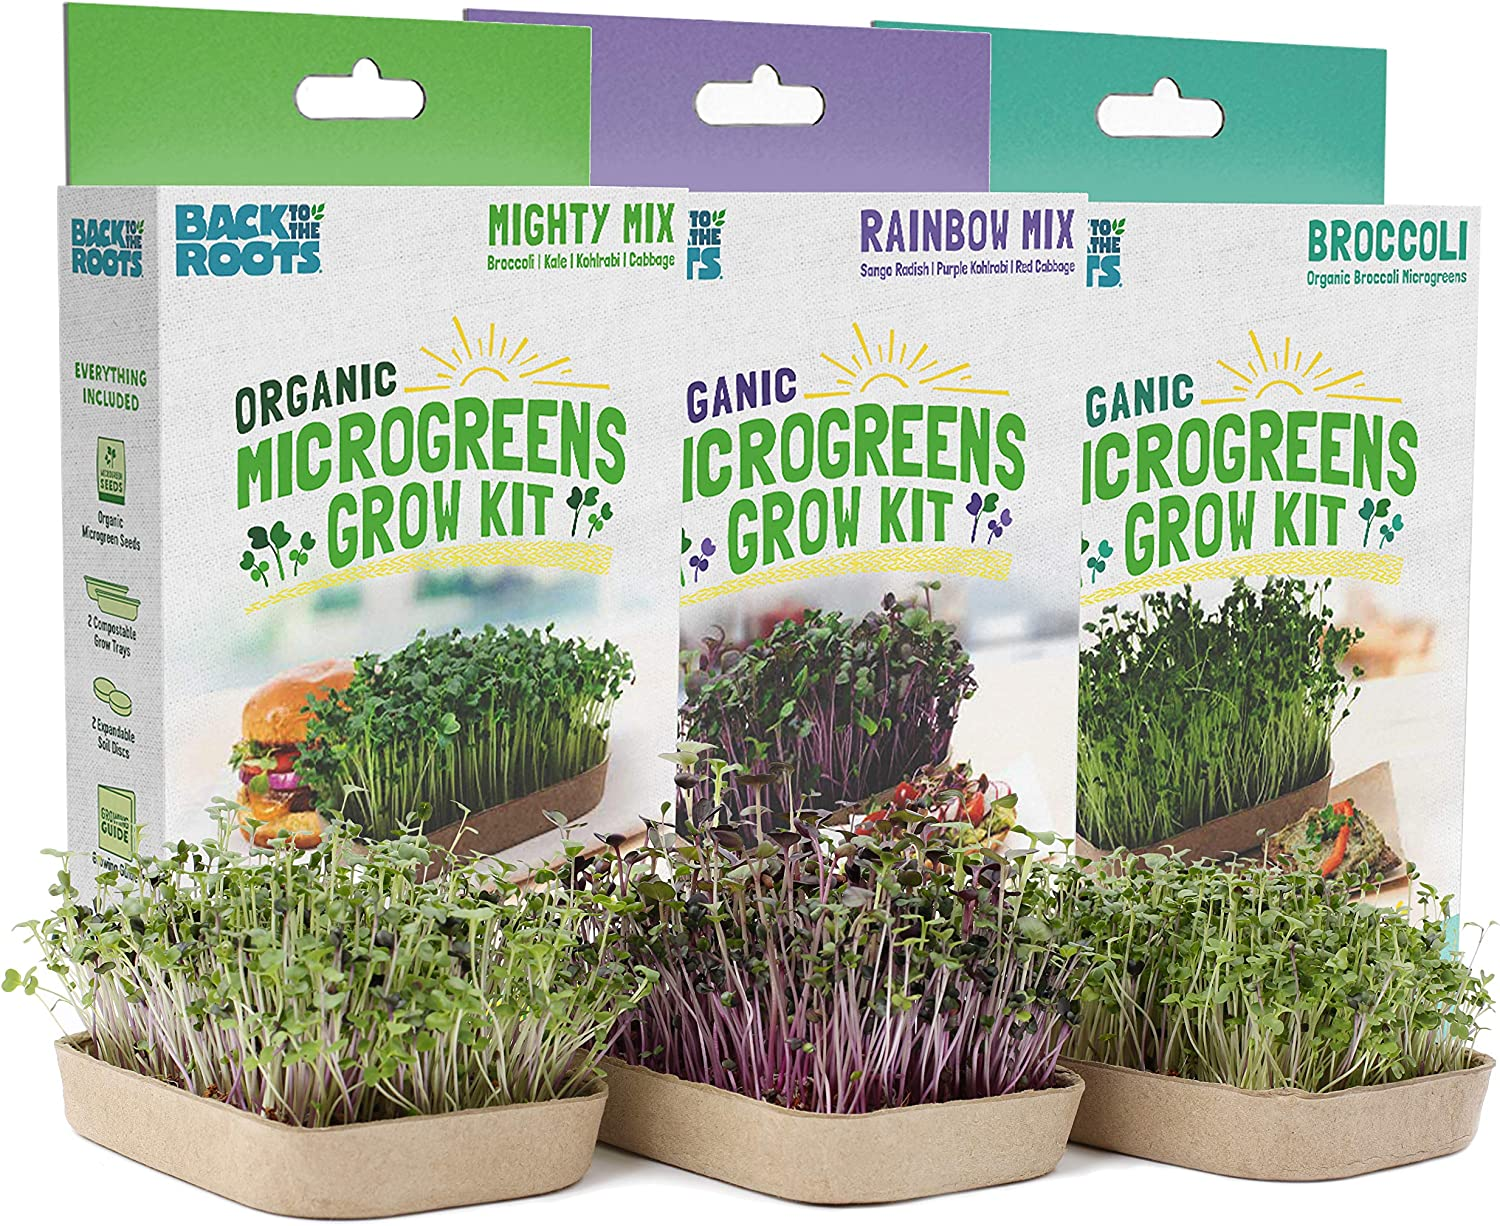 Back to the Roots 50041 DIY 6-Grow Variety Pack Organic Microgreens Kit, Indoor Gardening Starter Set